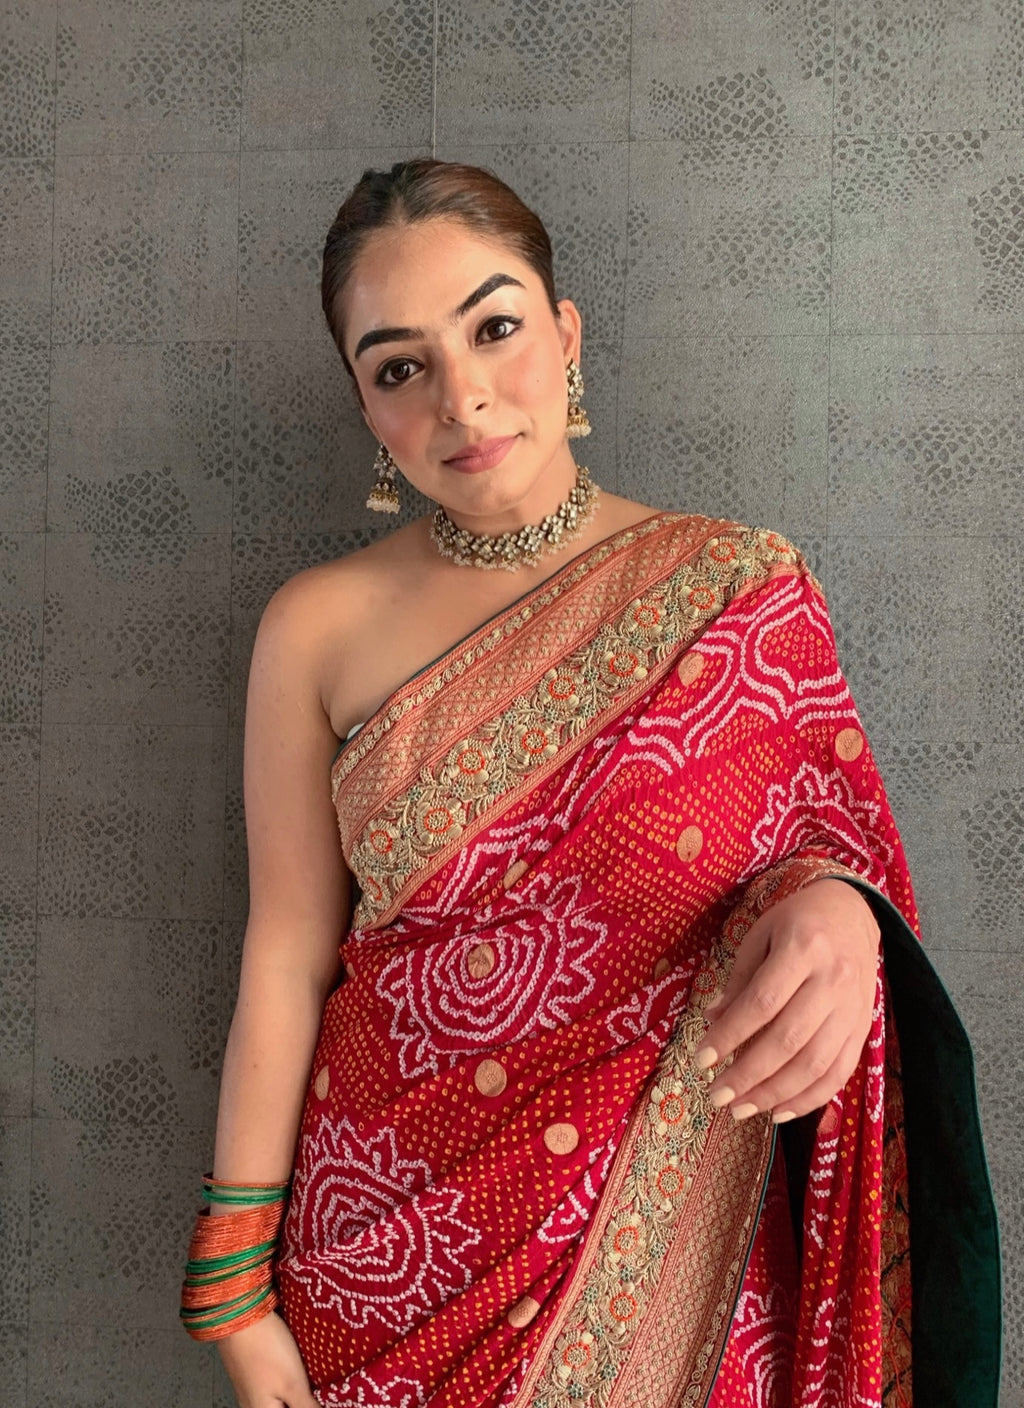 Stunning Red Bandhani saree (GH 59)